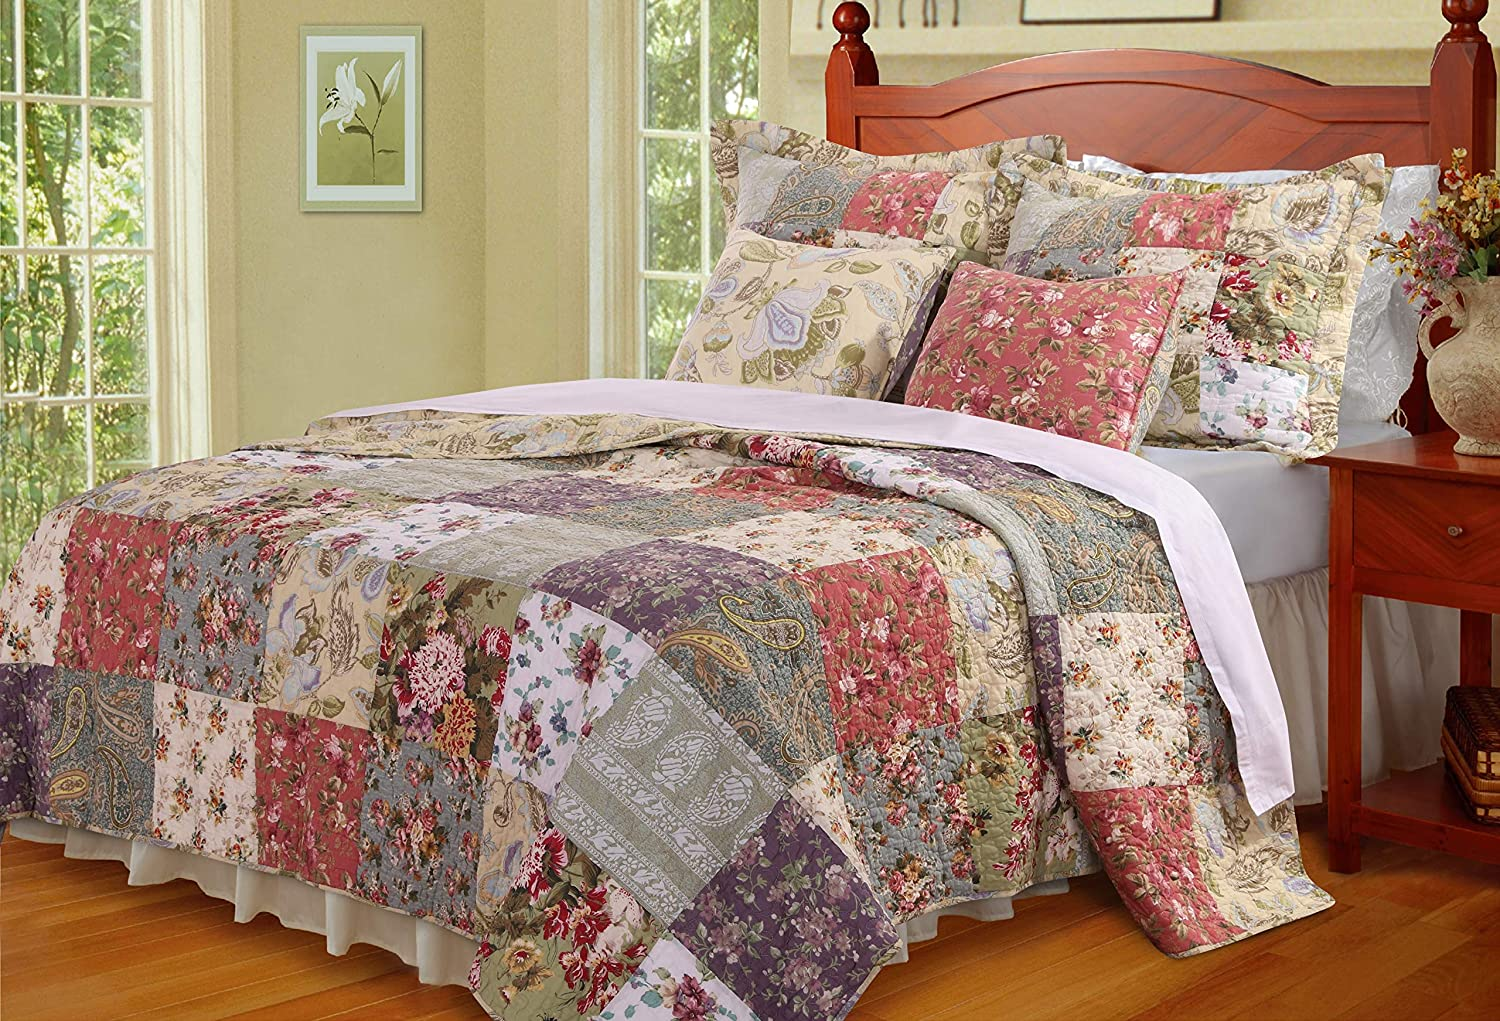 Greenland Home Blooming Prairie Cotton Patchwork Quilt Set, 5-Piece Full/Queen, Multi